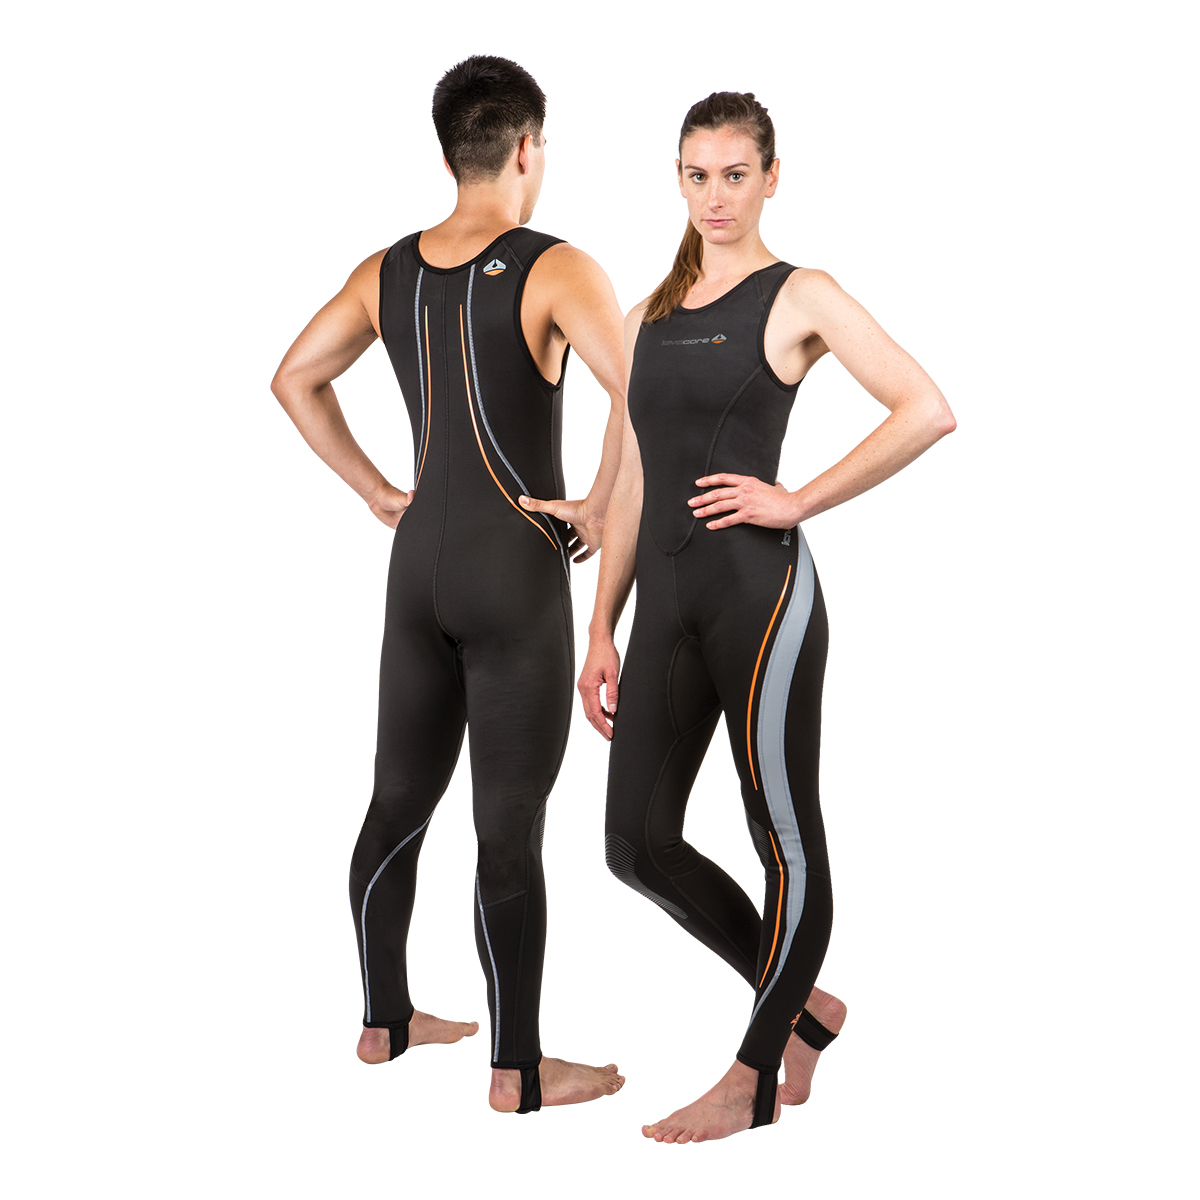 Lavacore Women's Sleeveless Full Suit for Scuba or Snorkeling by Oceanic